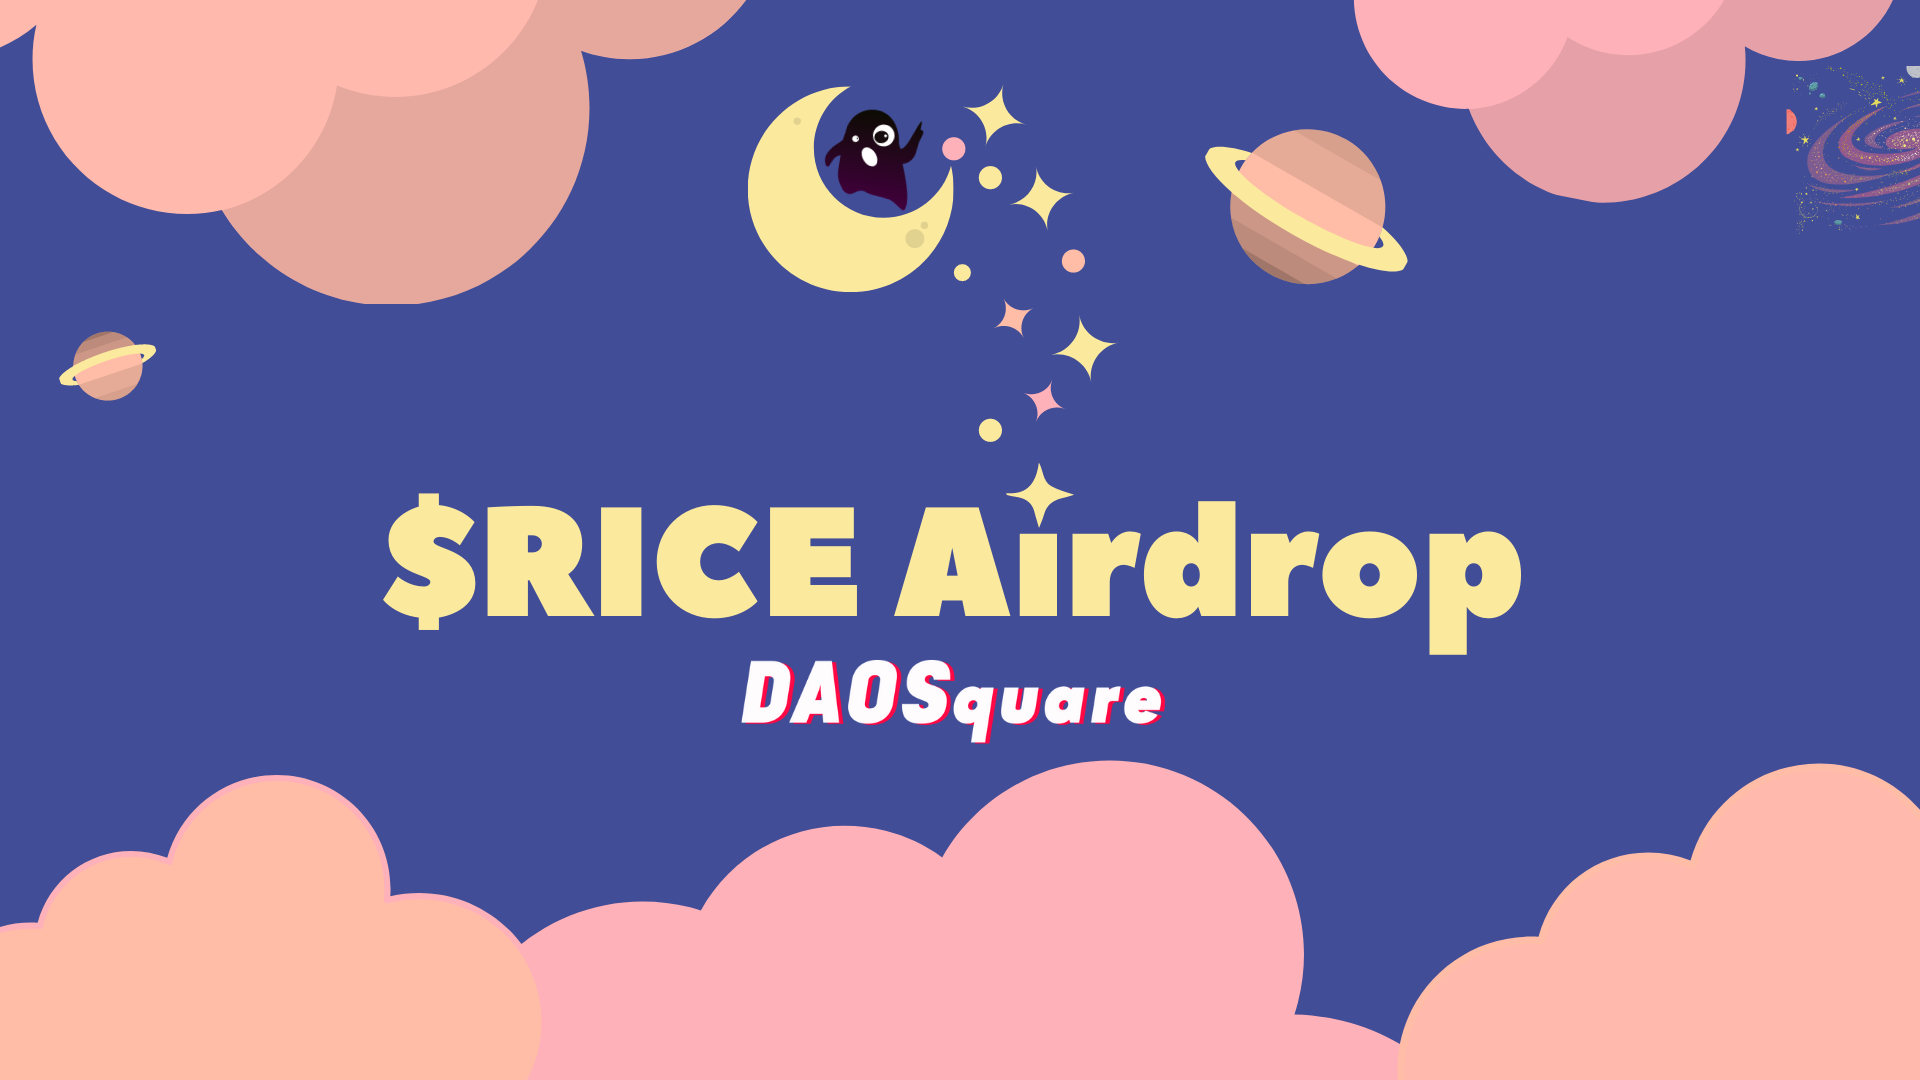 Proof of Twitter -> Airdrop $RICE